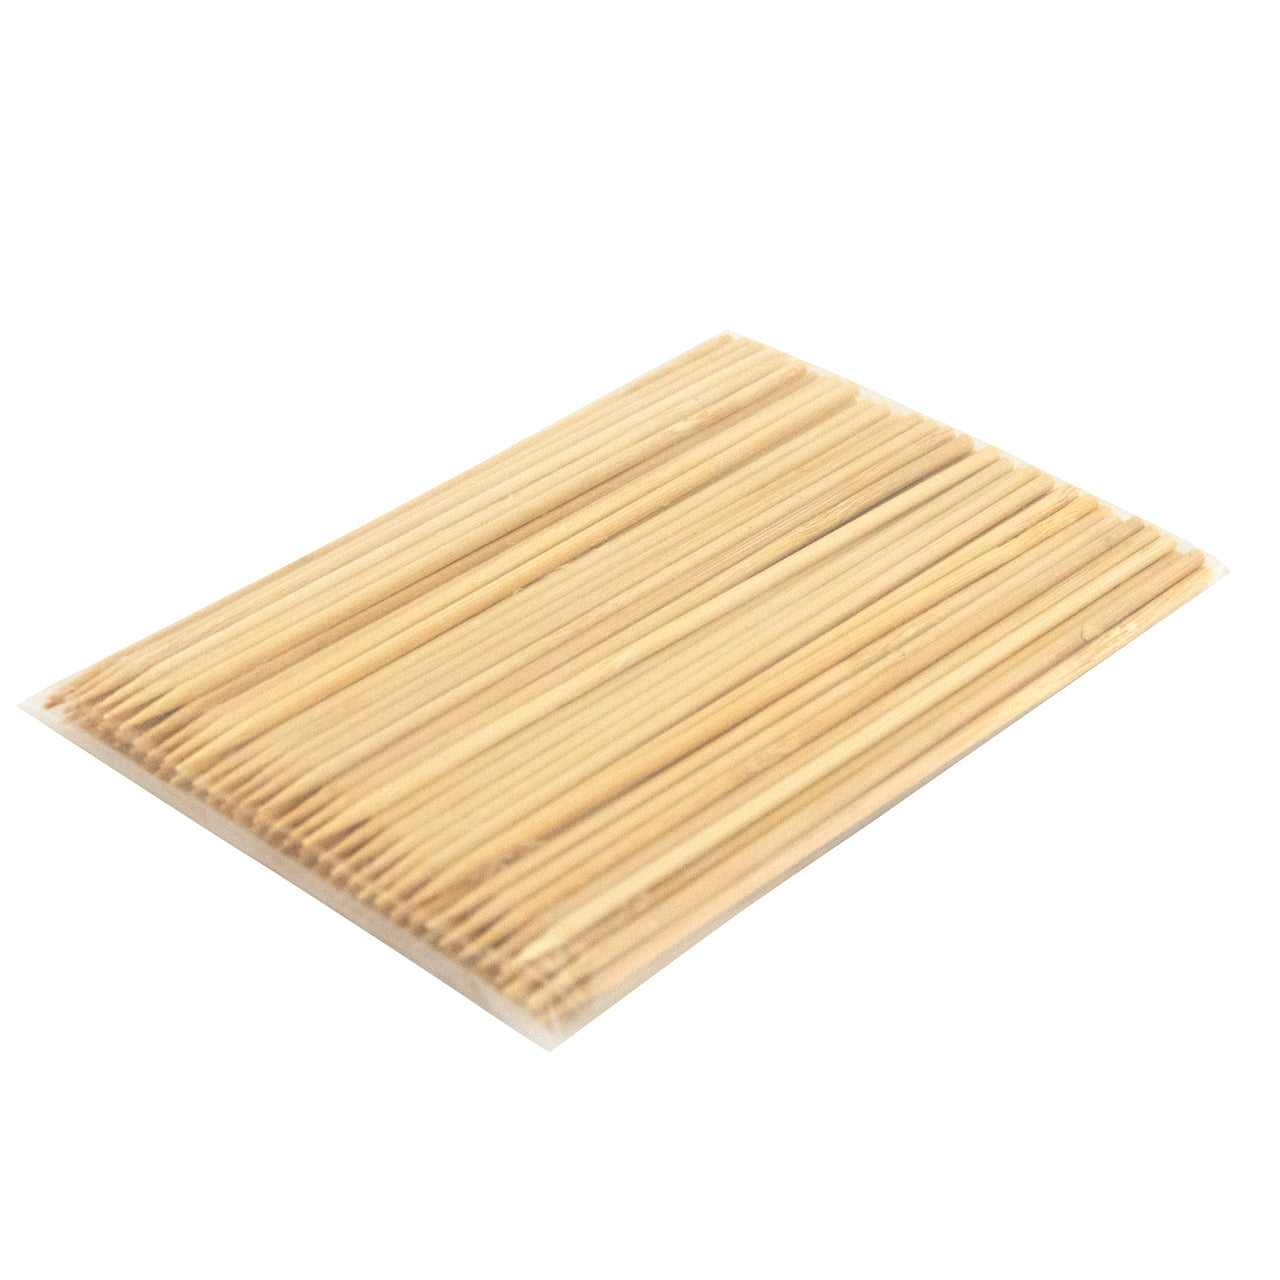 "Bamboo Skewers 6"" (3.0 mm dia., 100 pcs/pk) (SKU: 95727)"